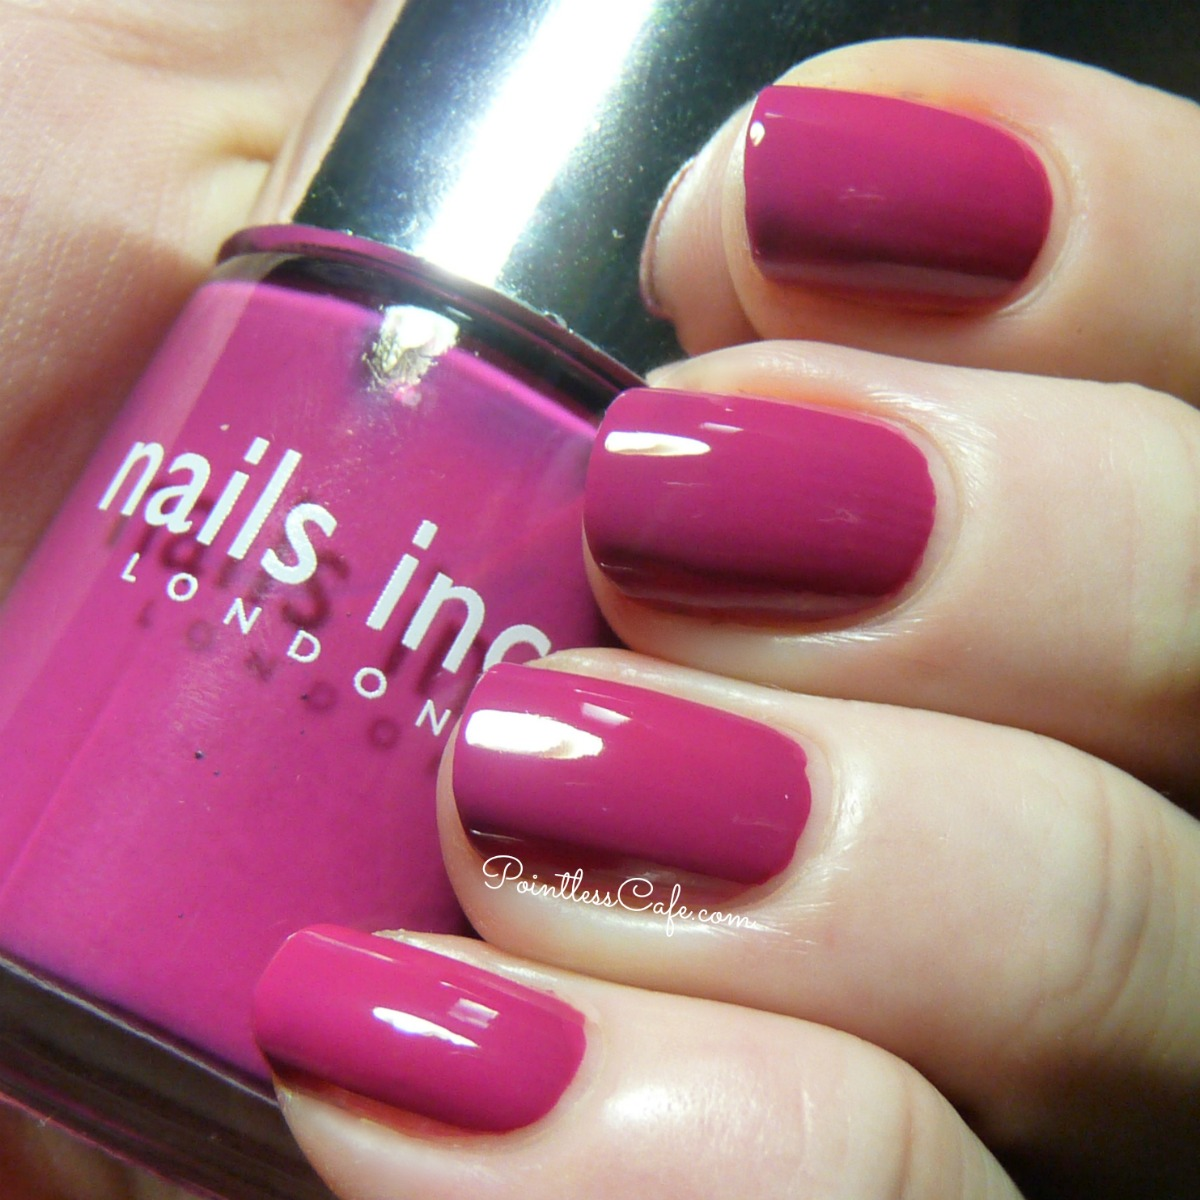 Nail Of The Day Nails Inc Walton Street Pointless Cafe